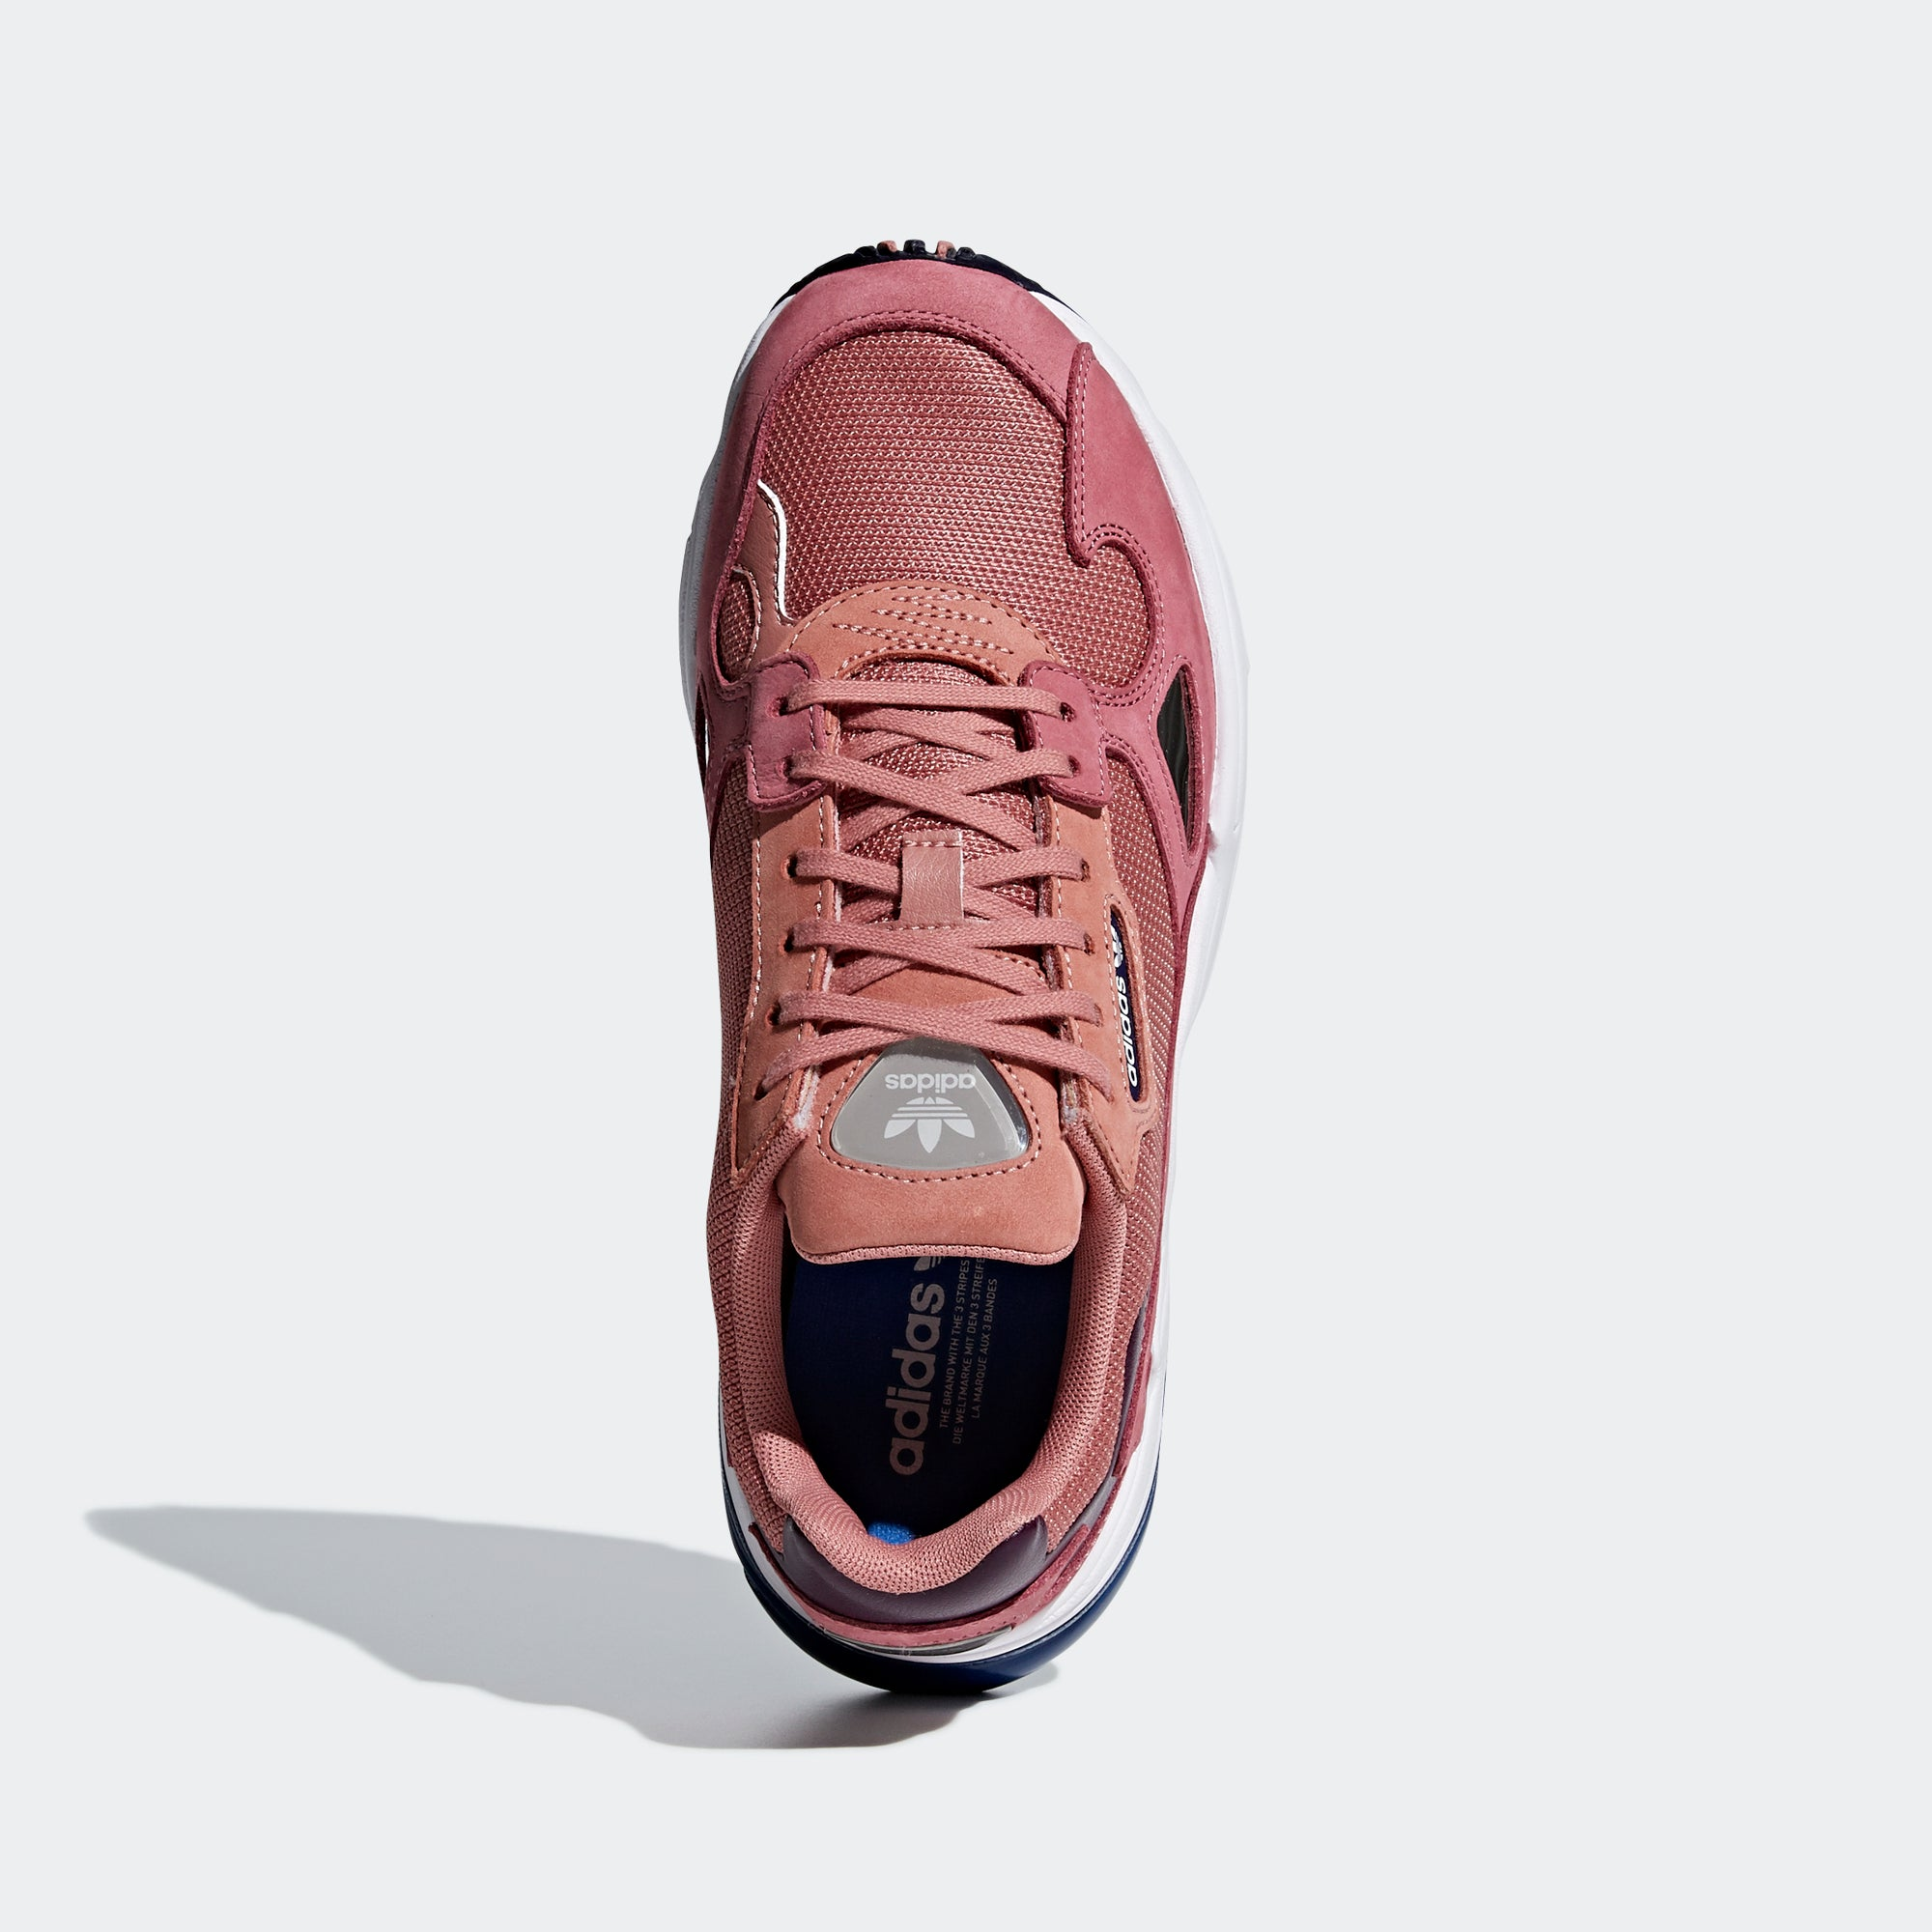 low priced 6c6f6 295fb Women s adidas Originals Falcon Shoes Raw Pink. 1